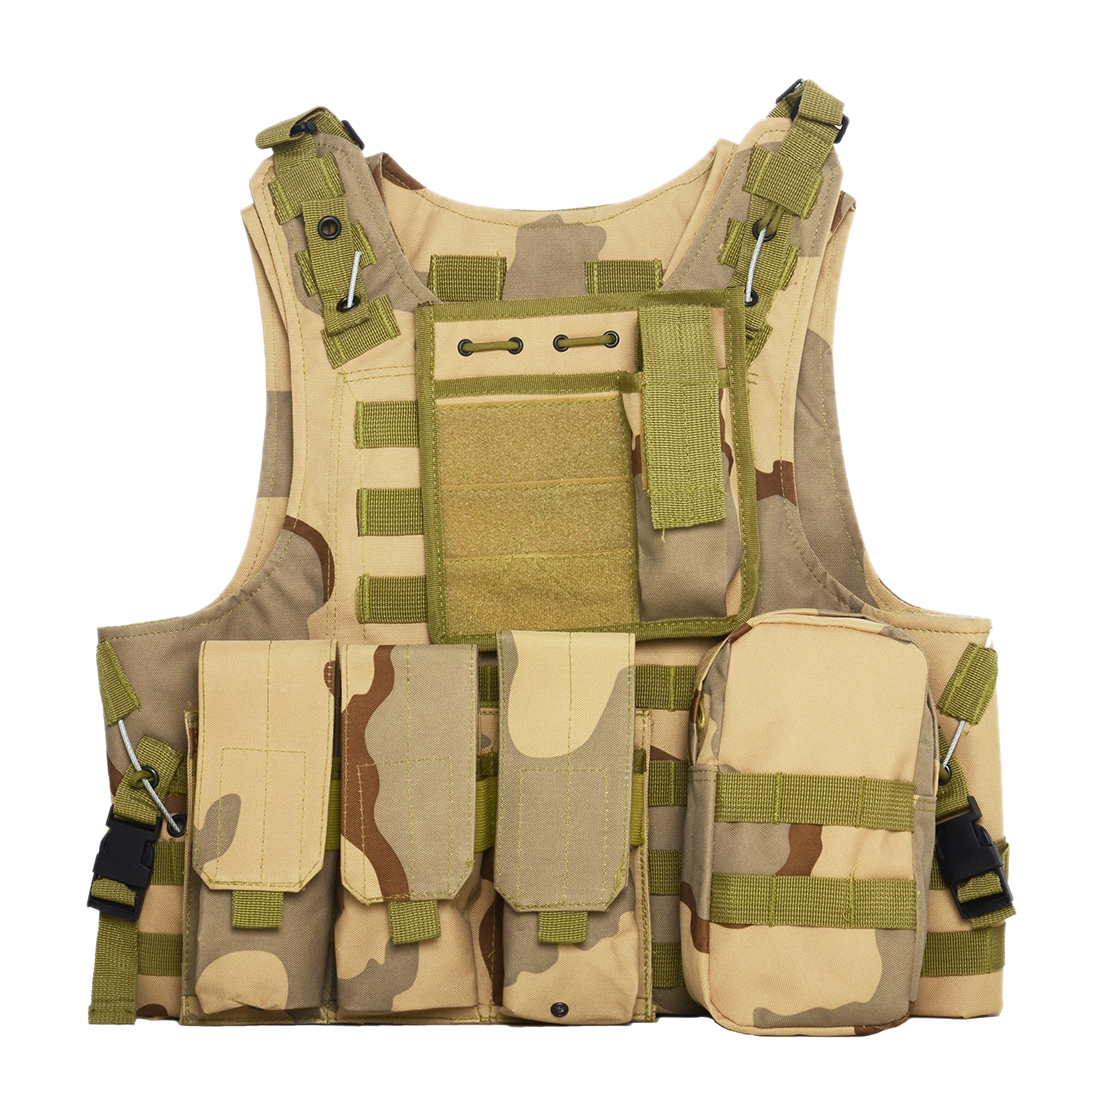 Outdoor Tactical Waistcoat Combat Molle Military Multi Pockets hunting Vest Oxford Airsoft Waregame Equipment Equipment outlife new style professional military tactical multifunction shovel outdoor camping survival folding spade tool equipment